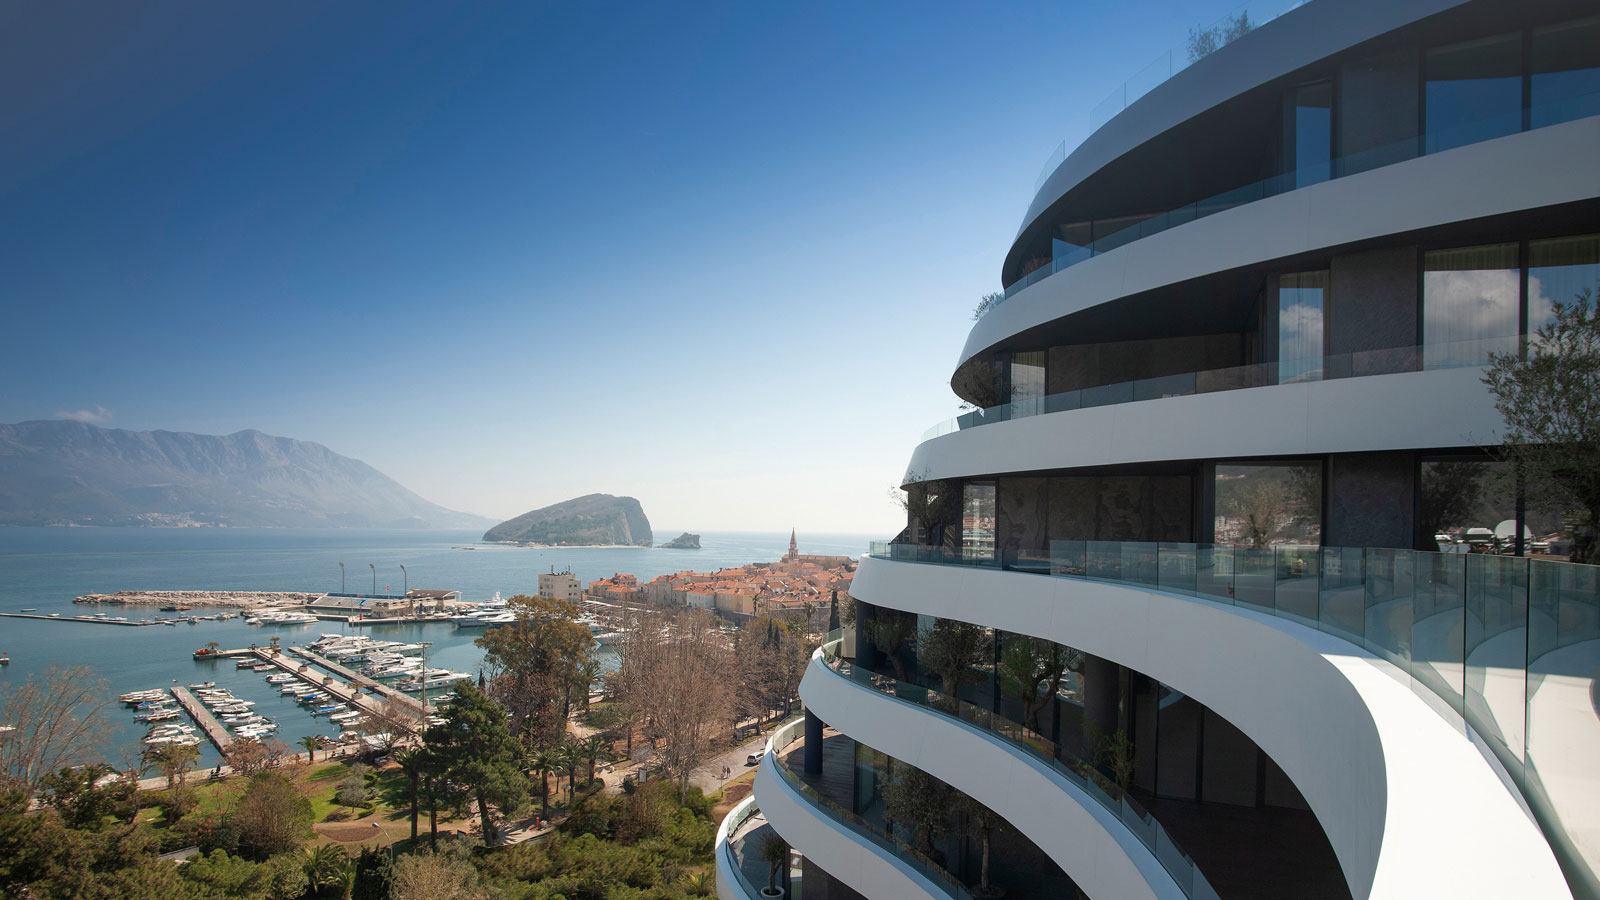 PORCELANOSA Group Projects: Royal Gardens, a deluxe residential development in front of the Adriatic Sea